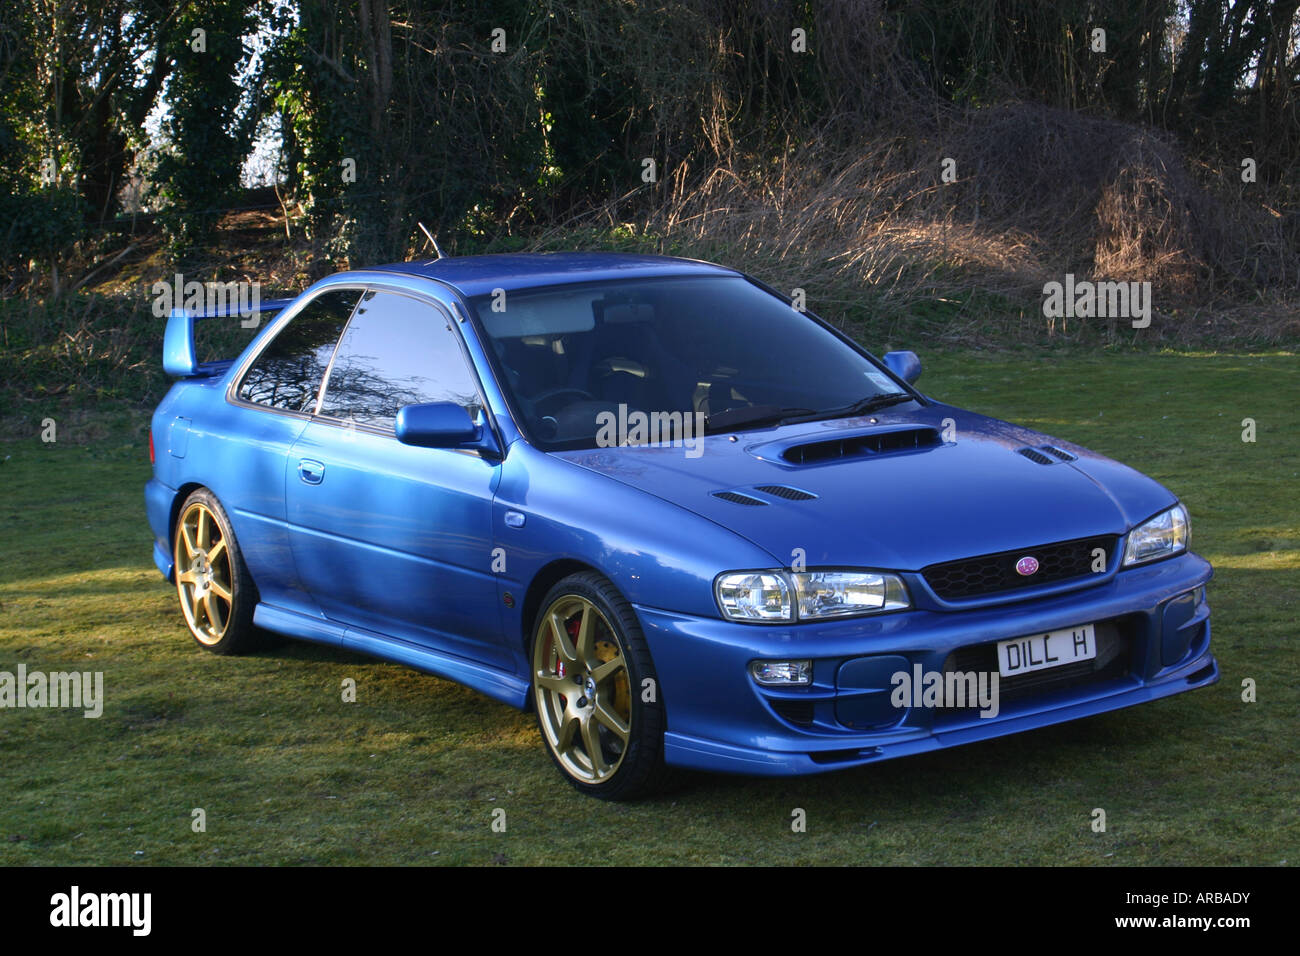 Subaru Wrx Sti For Sale >> Subaru Impreza Wrx Turbo Stock Photos & Subaru Impreza Wrx Turbo Stock Images - Alamy